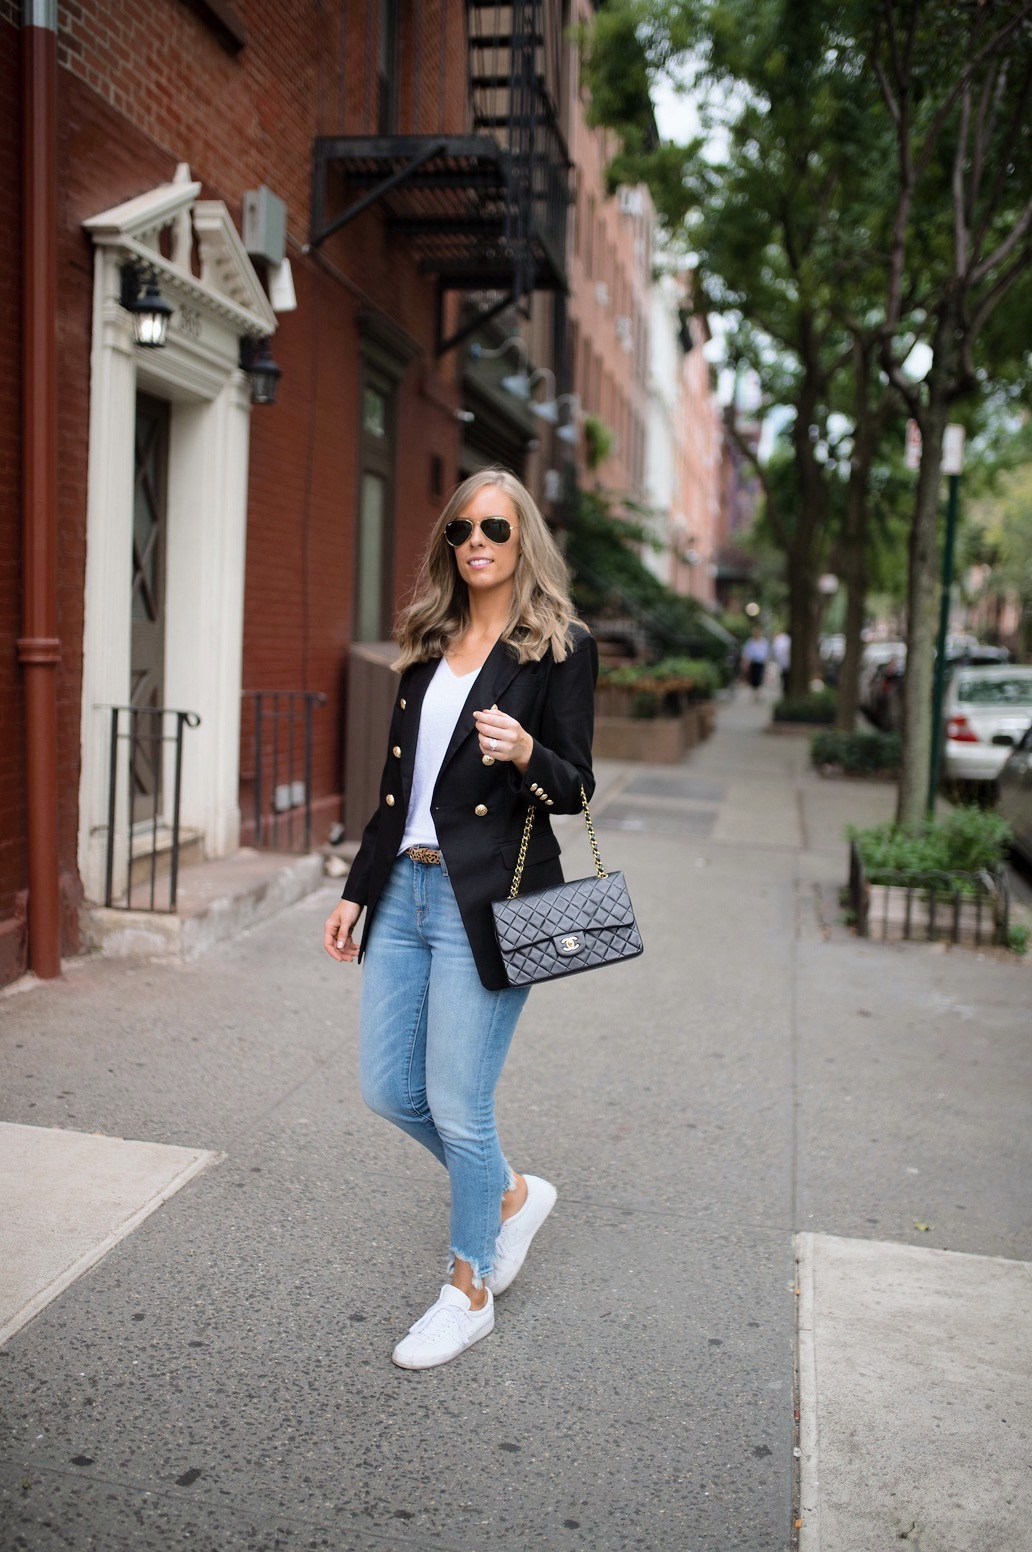 casual-outfit-ideas-blue-distressed-jeans-white-sneakers-balmain-blazer-chanel-bag-fashion-blogger-new-york-street-style-outfit-lauren-slade-style-elixir-blog-2